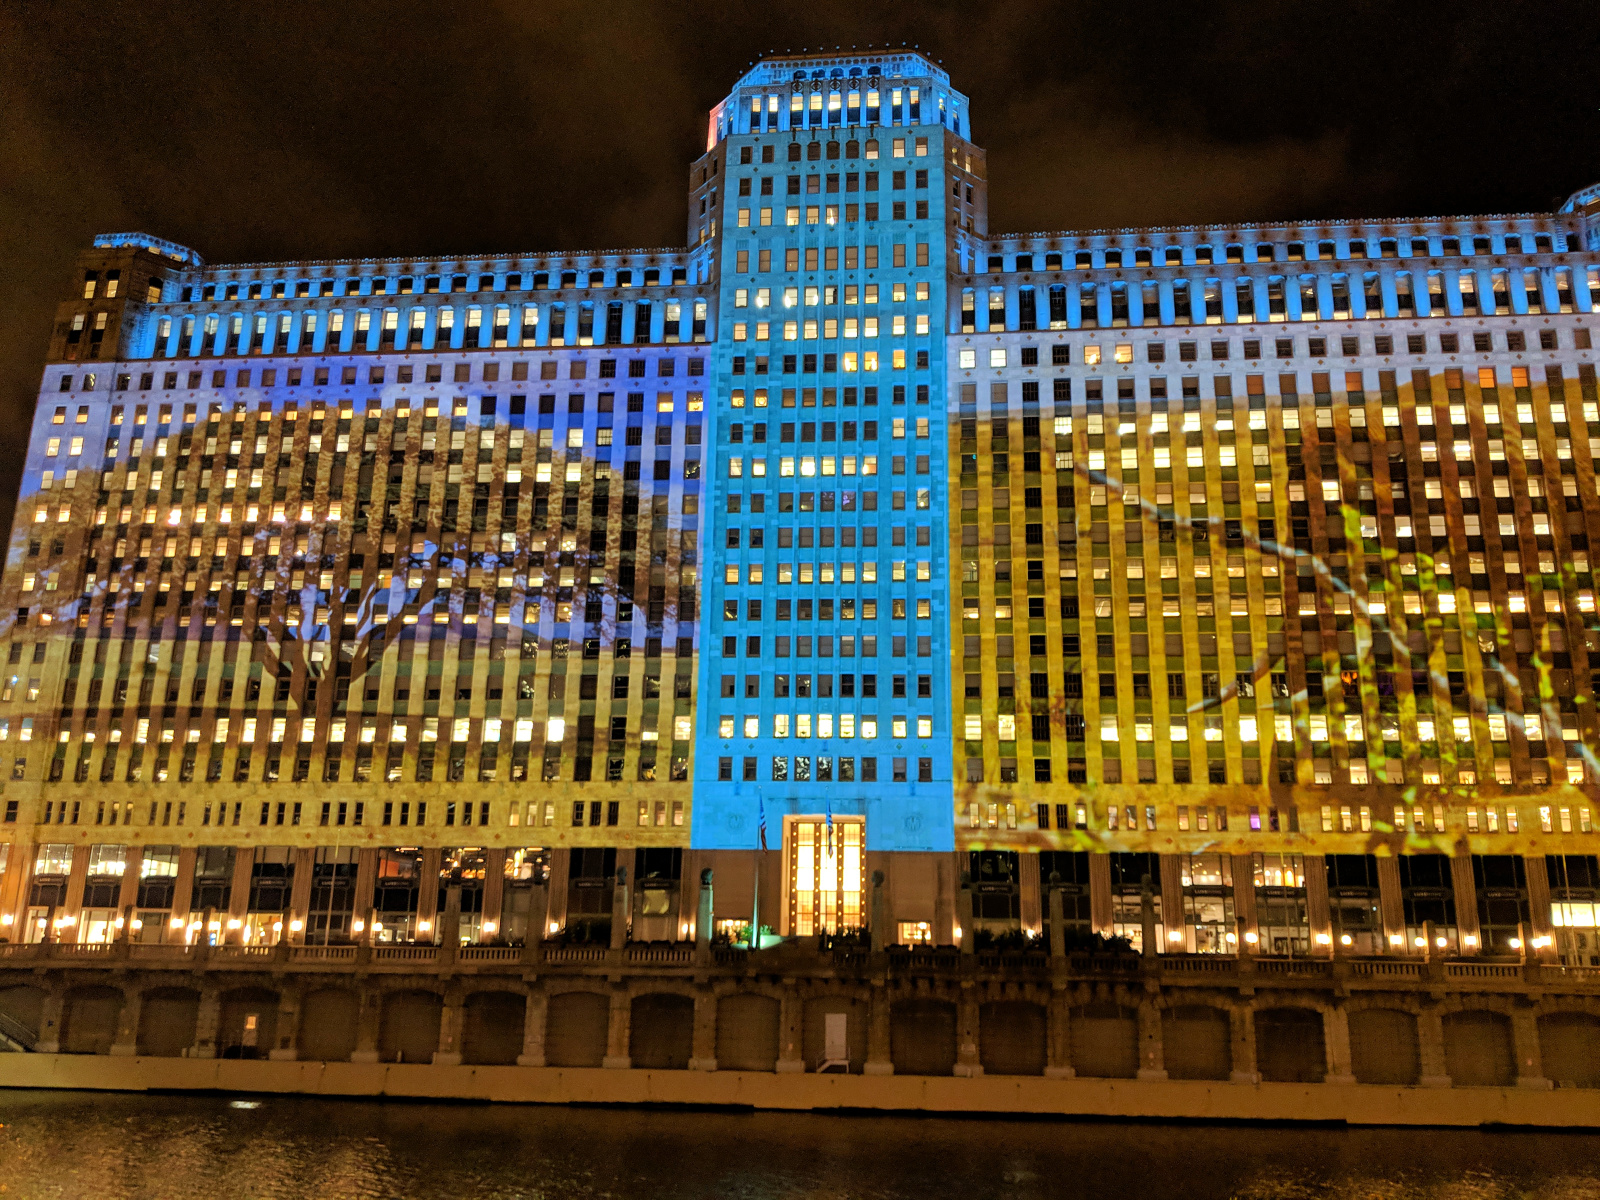 Projected art display lights up the Merchandise Mart facade 5 nights a week.